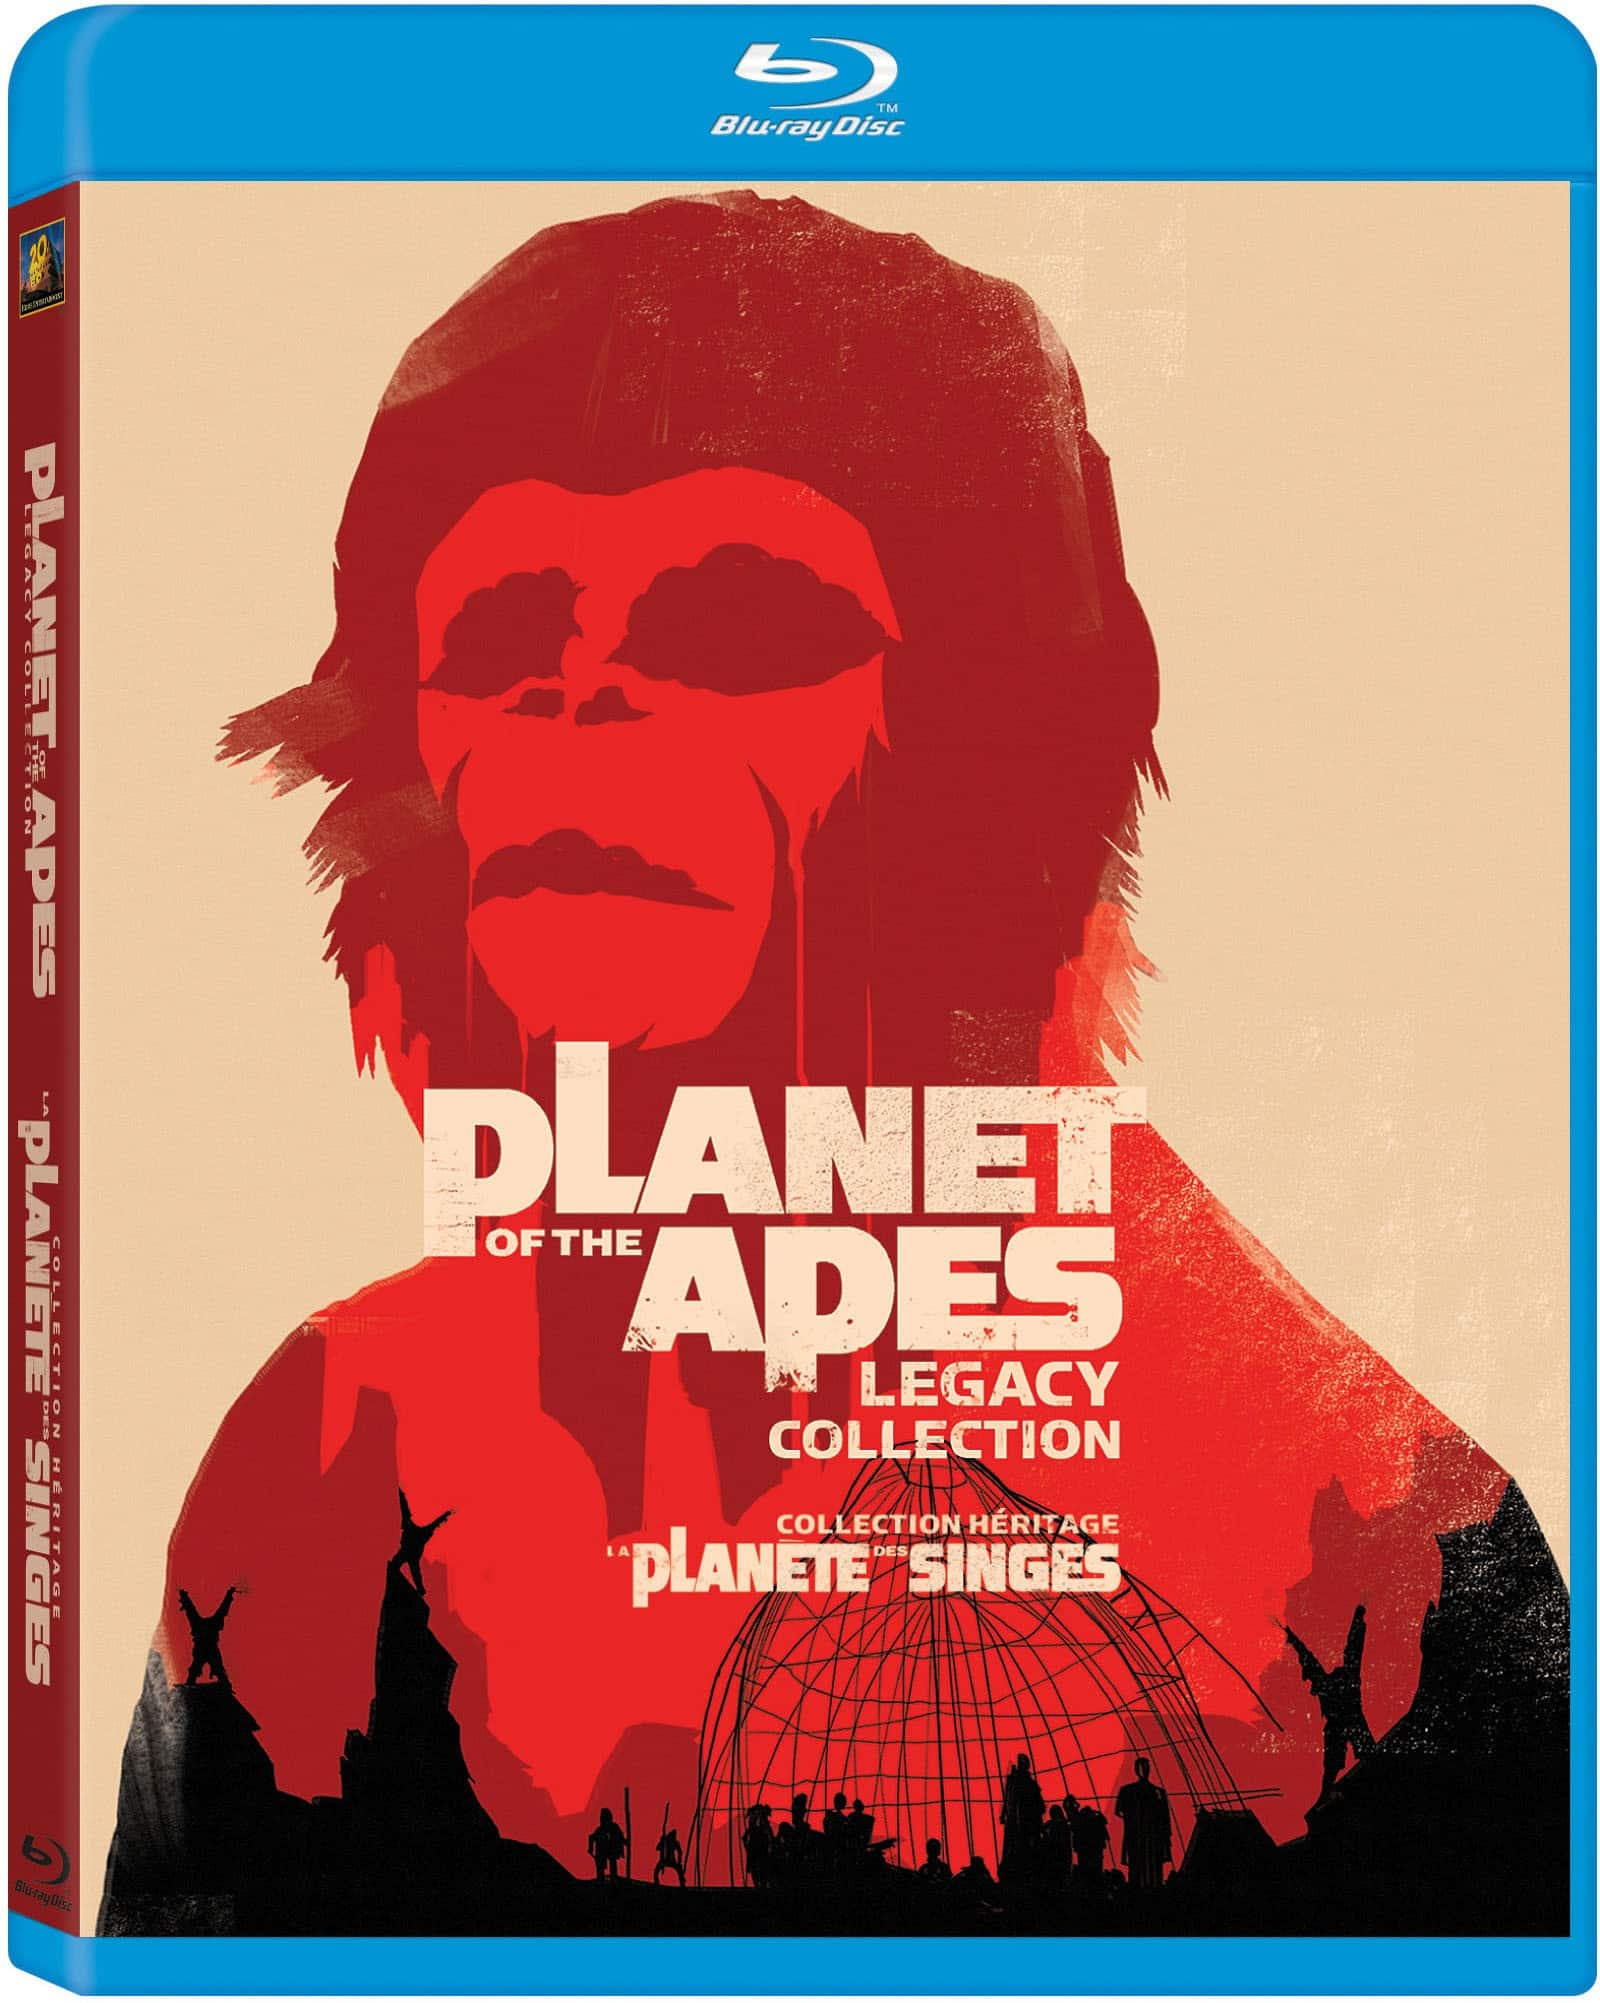 Planet of the Apes Legacy Collection (Blu-ray) $16 Shipped